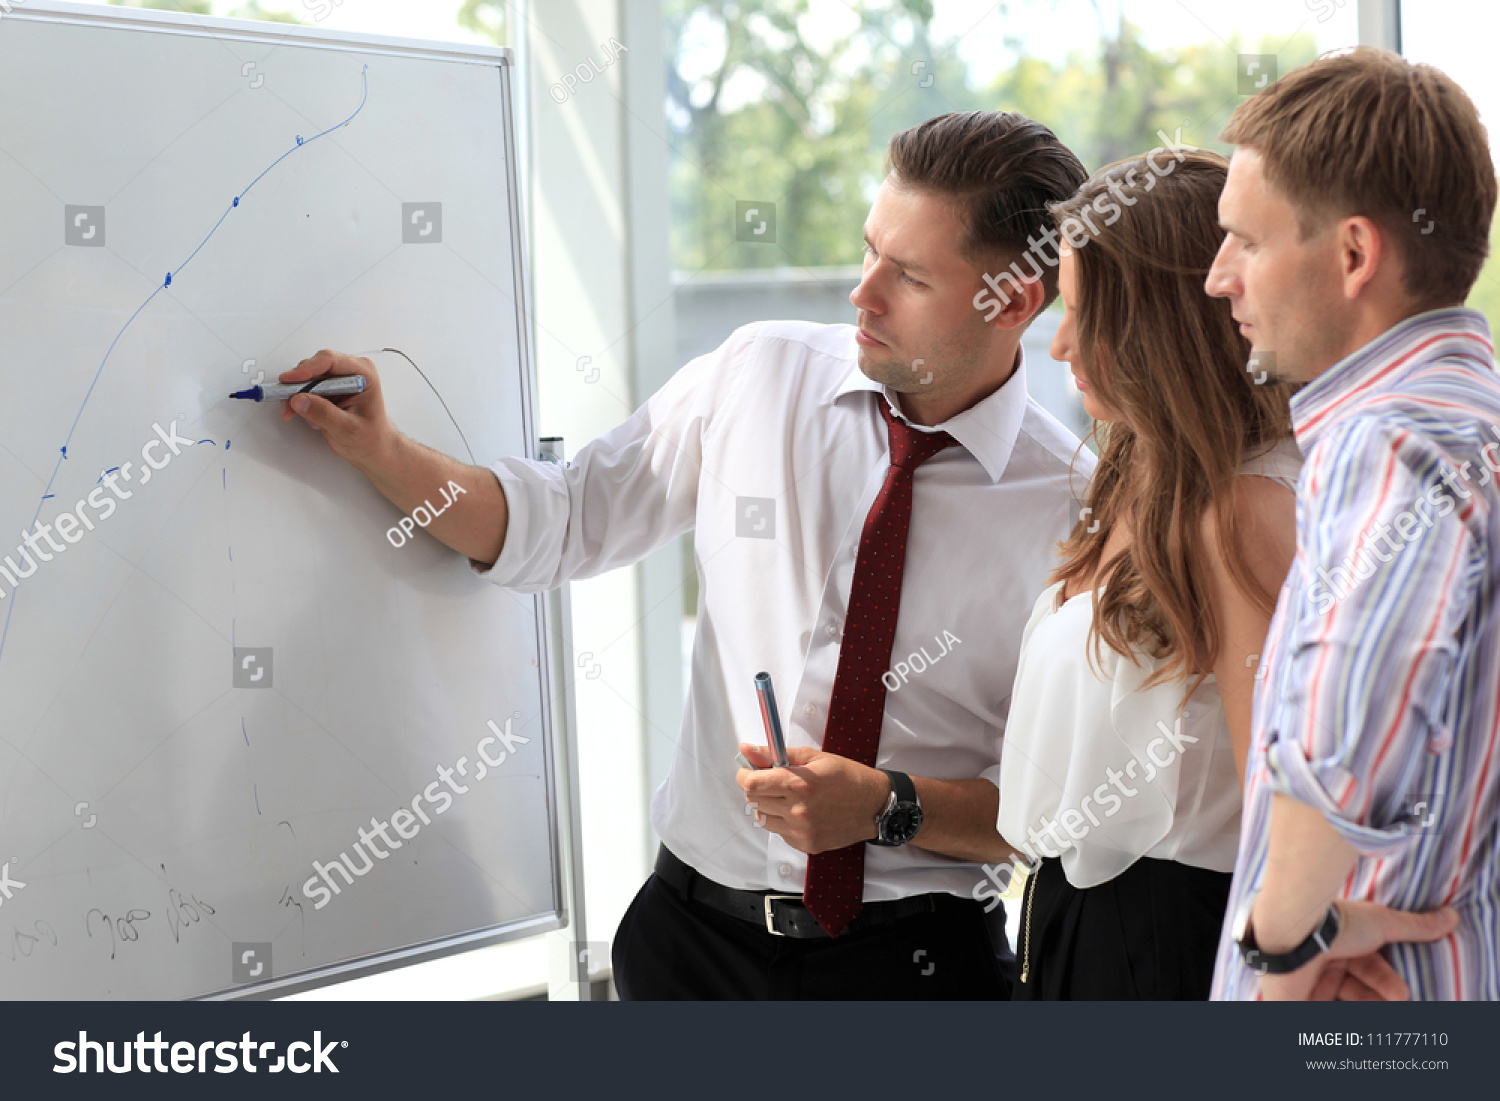 Business People Looking At Their Leader While She